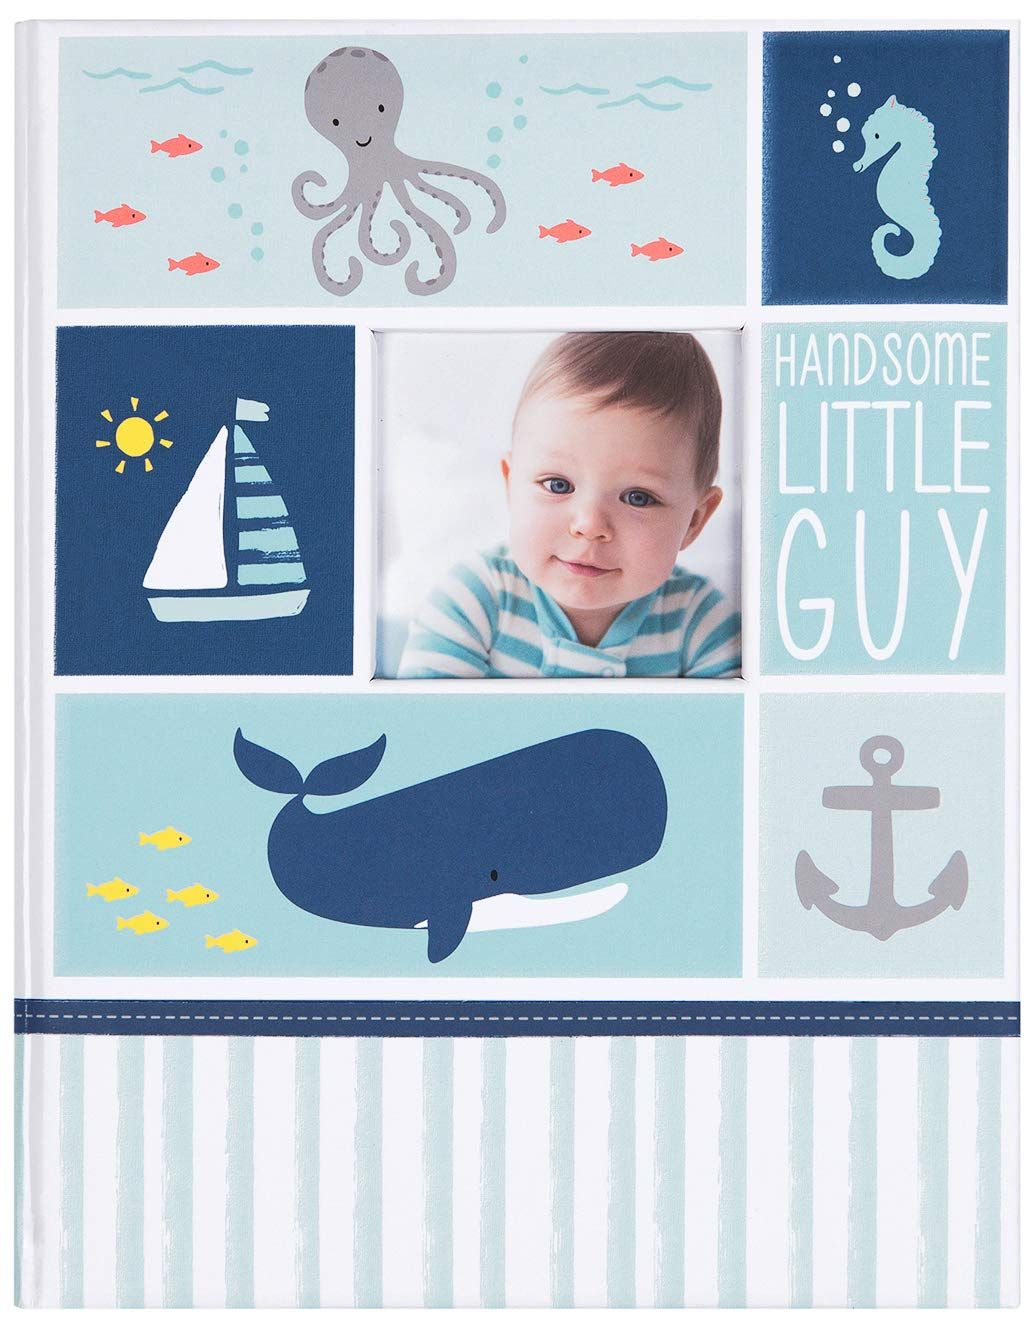 Carter's Blue Nautical 'Grandma's Brag Book' Baby Photo Album, 7.25 W x 4.5 H, 20 Pages 7.25 W x 4.5 H C.R. Gibson BP73-14074